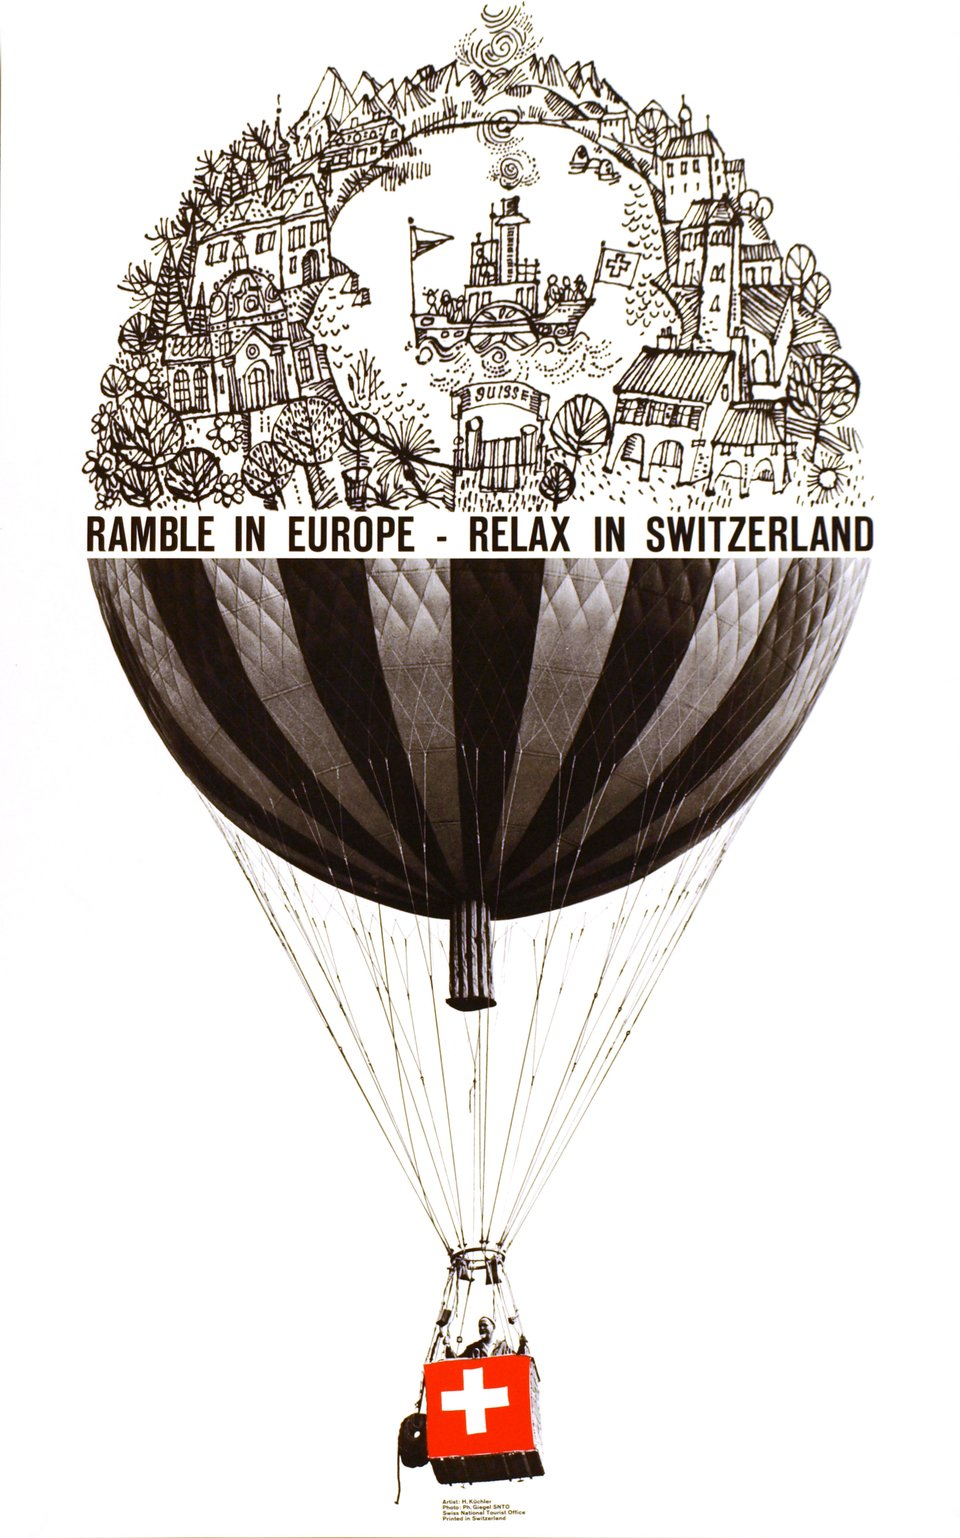 Ramble in Europe - Relax in Switzerland – Affiche ancienne – Phillippe GIEGEL, Hans KÜCHLER – 1963